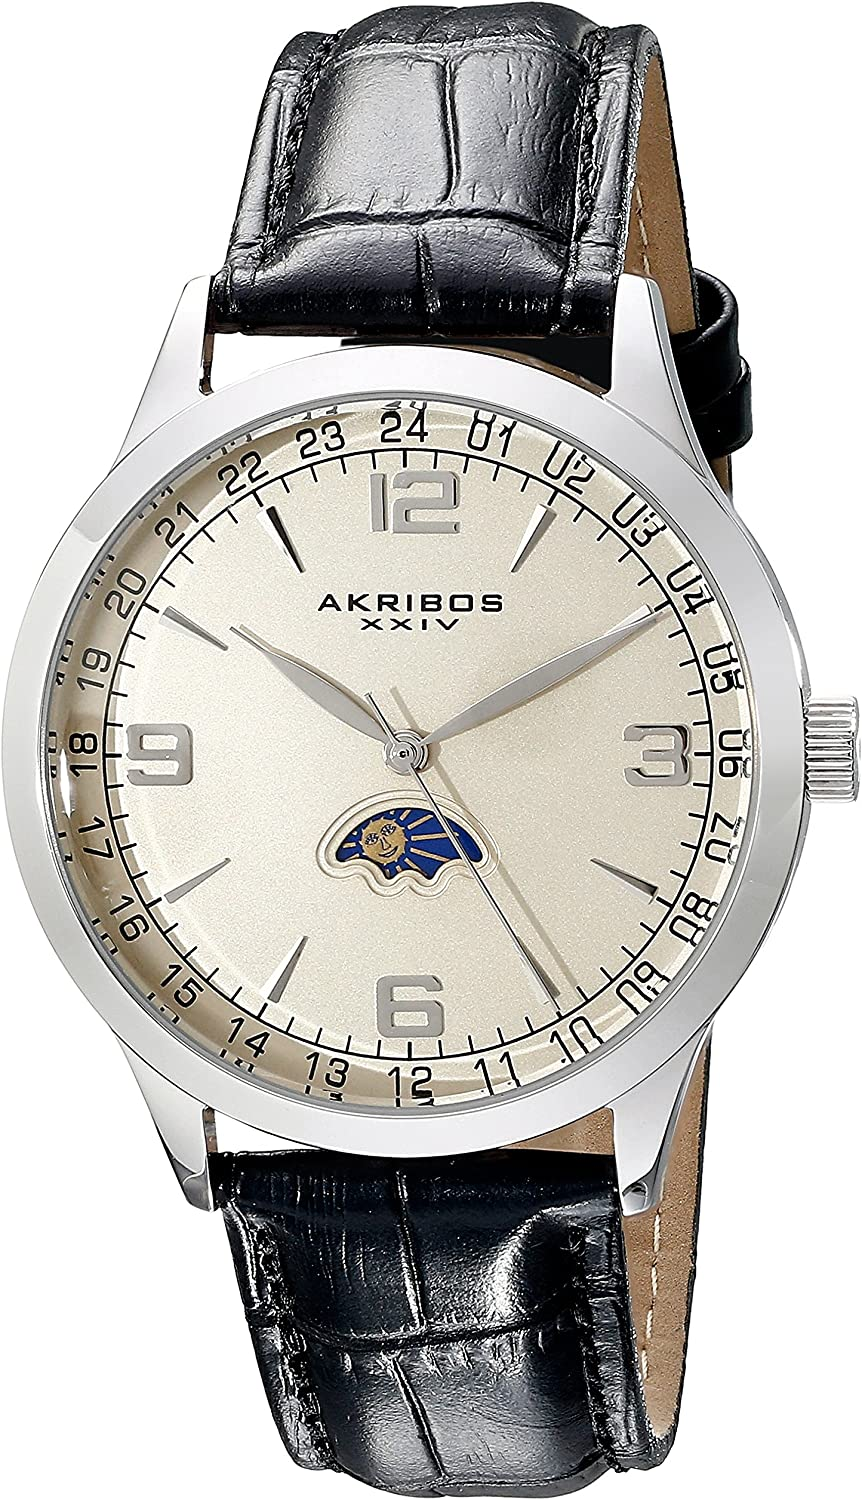 Akribos XXIV Men's Watch - Simple and Crisp and Clear Dial with Am/Pm Moonphase Indicator On Alligator Pattern Leather Band - AK637